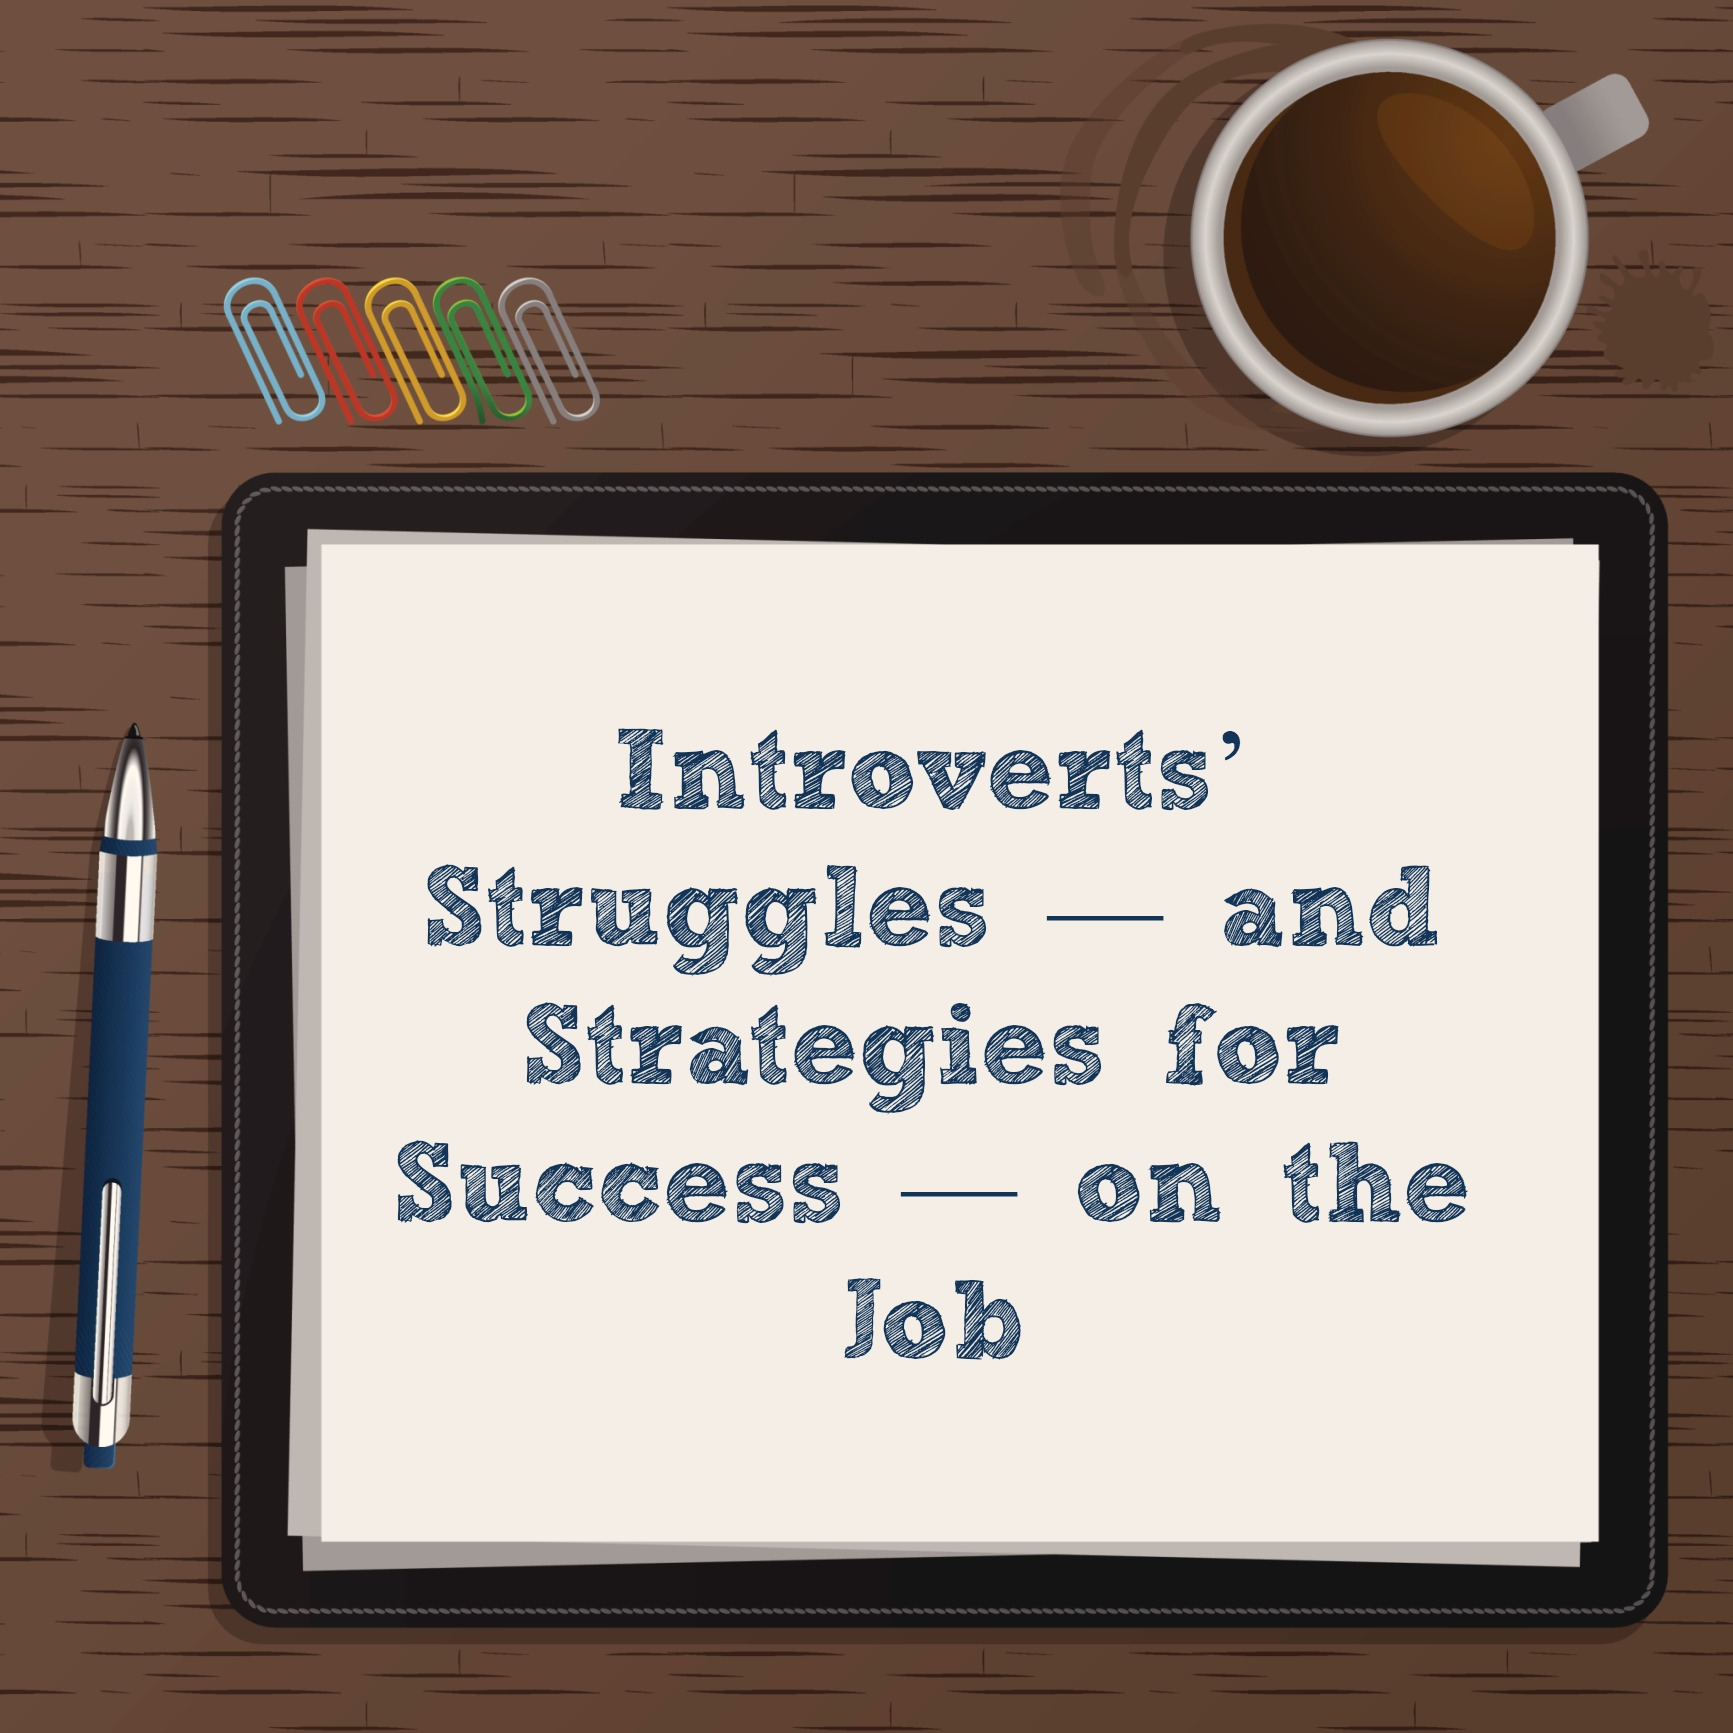 Introverts on the job